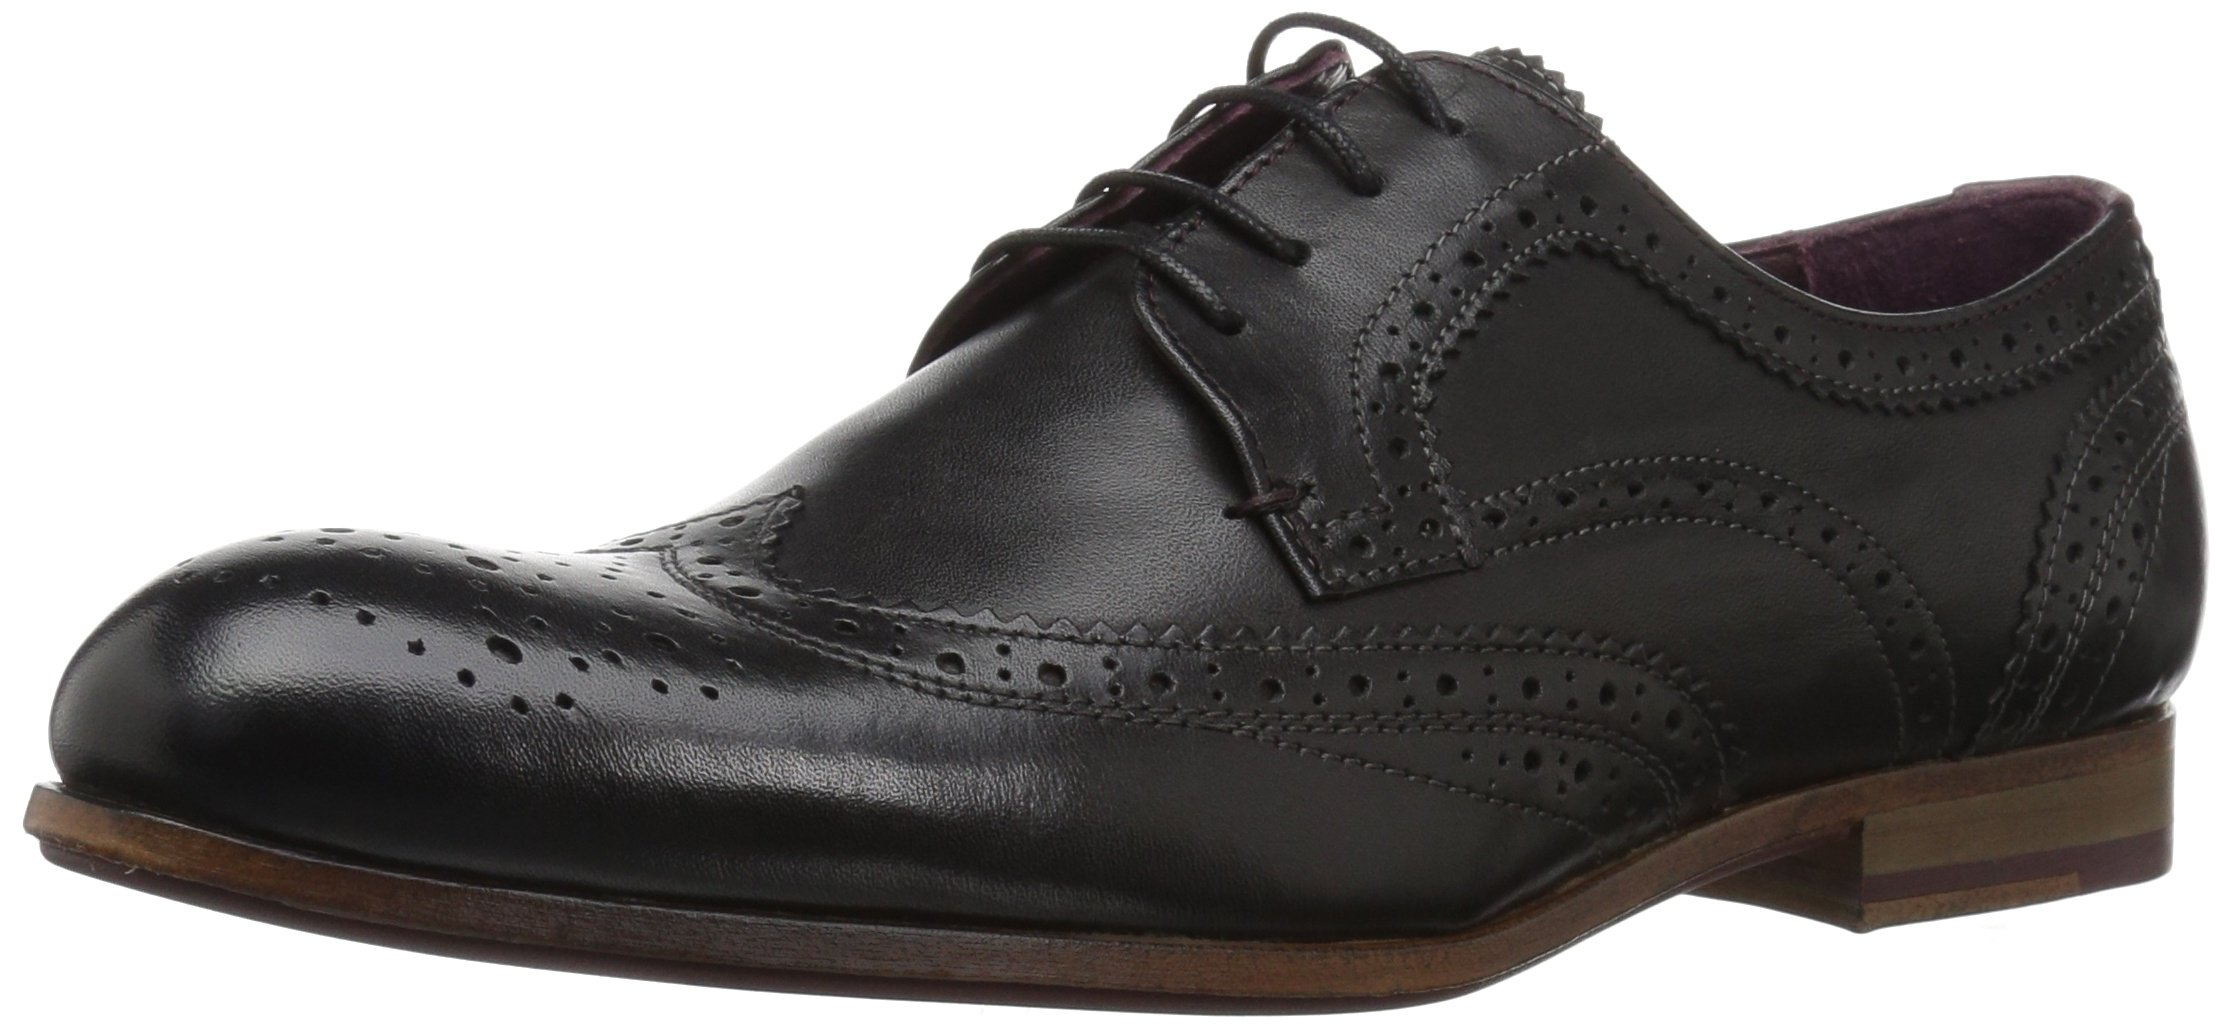 Ted Baker Men's Granet Oxford, Black, 13 D(M) US